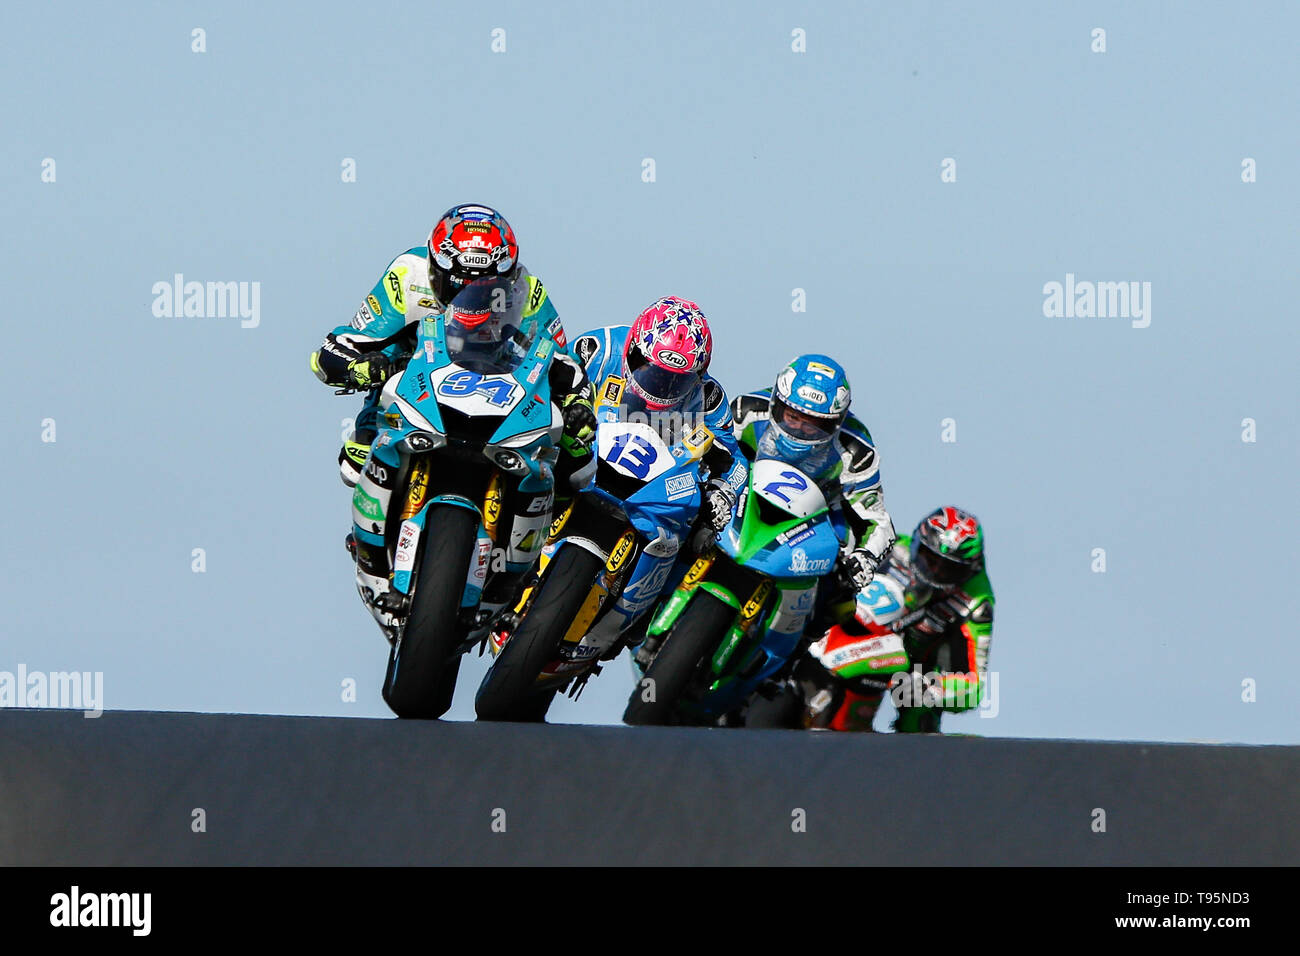 Portrush, Northern Ireland. 16th May, 2019. International North West 200 Motorcycle road racing, Thursday practice and evening racing; Alastair Seeley (EHA Racing Yamaha) leads Lee Johnston (Ashcourt Racing Yamaha), Dean Harrison (Silicone Engineering Racing Kawasaki) and James Hillier (Quattro Plant Wicked Coatings Kawasaki) during the SuperSport race Credit: Action Plus Sports/Alamy Live News - Stock Image